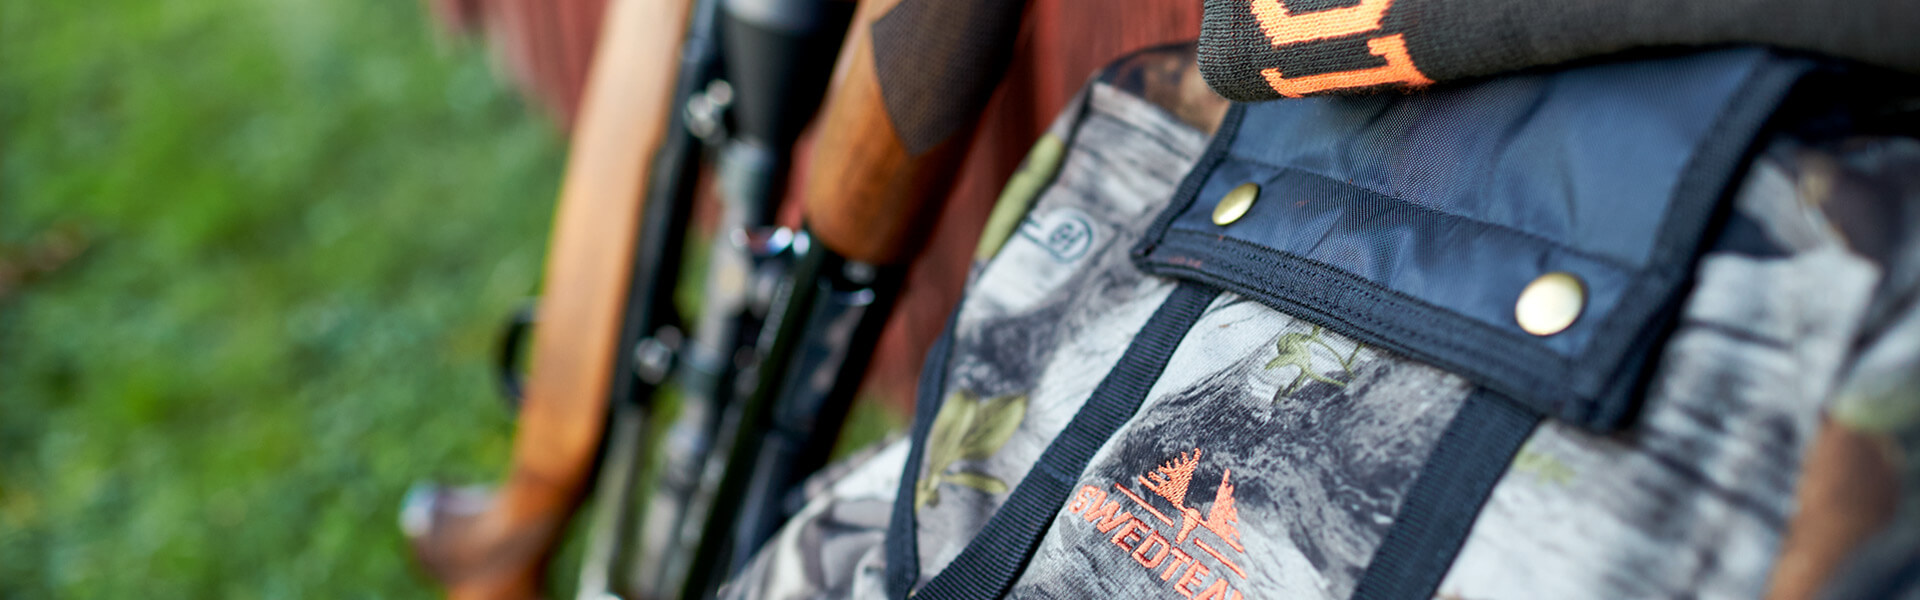 Hunting gear and products from Swedteam